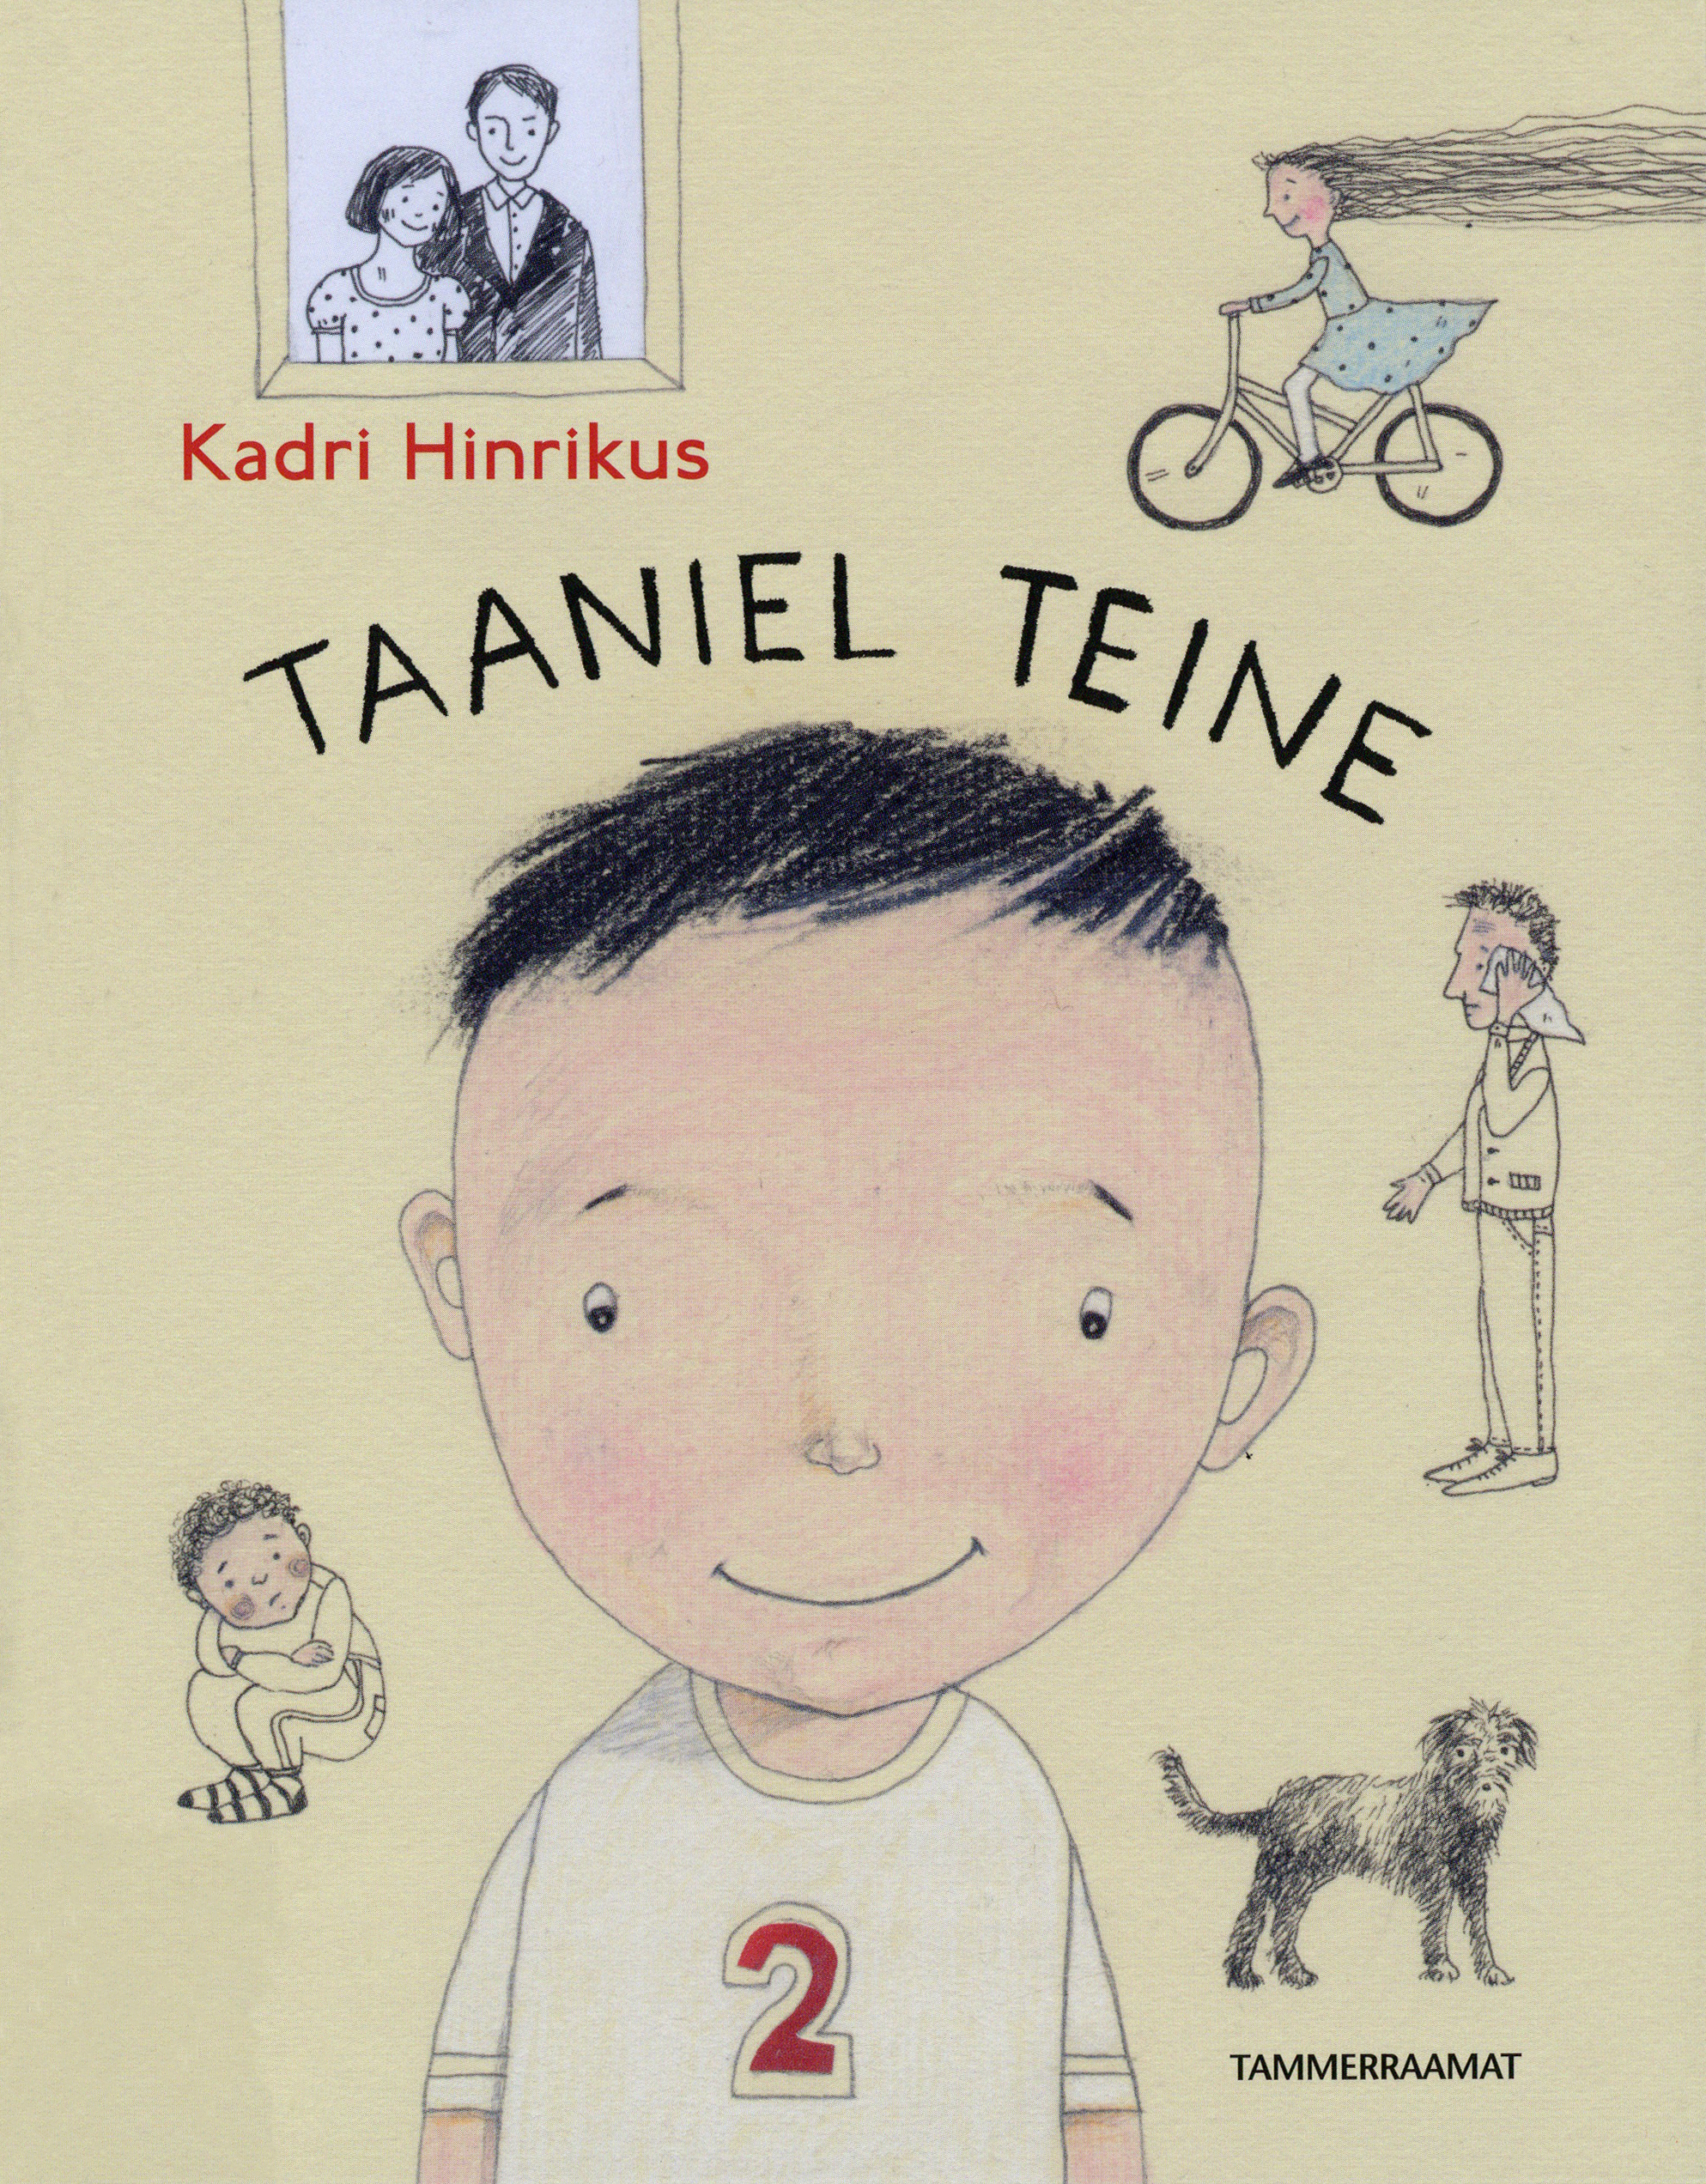 Taaniel Teine Book Cover